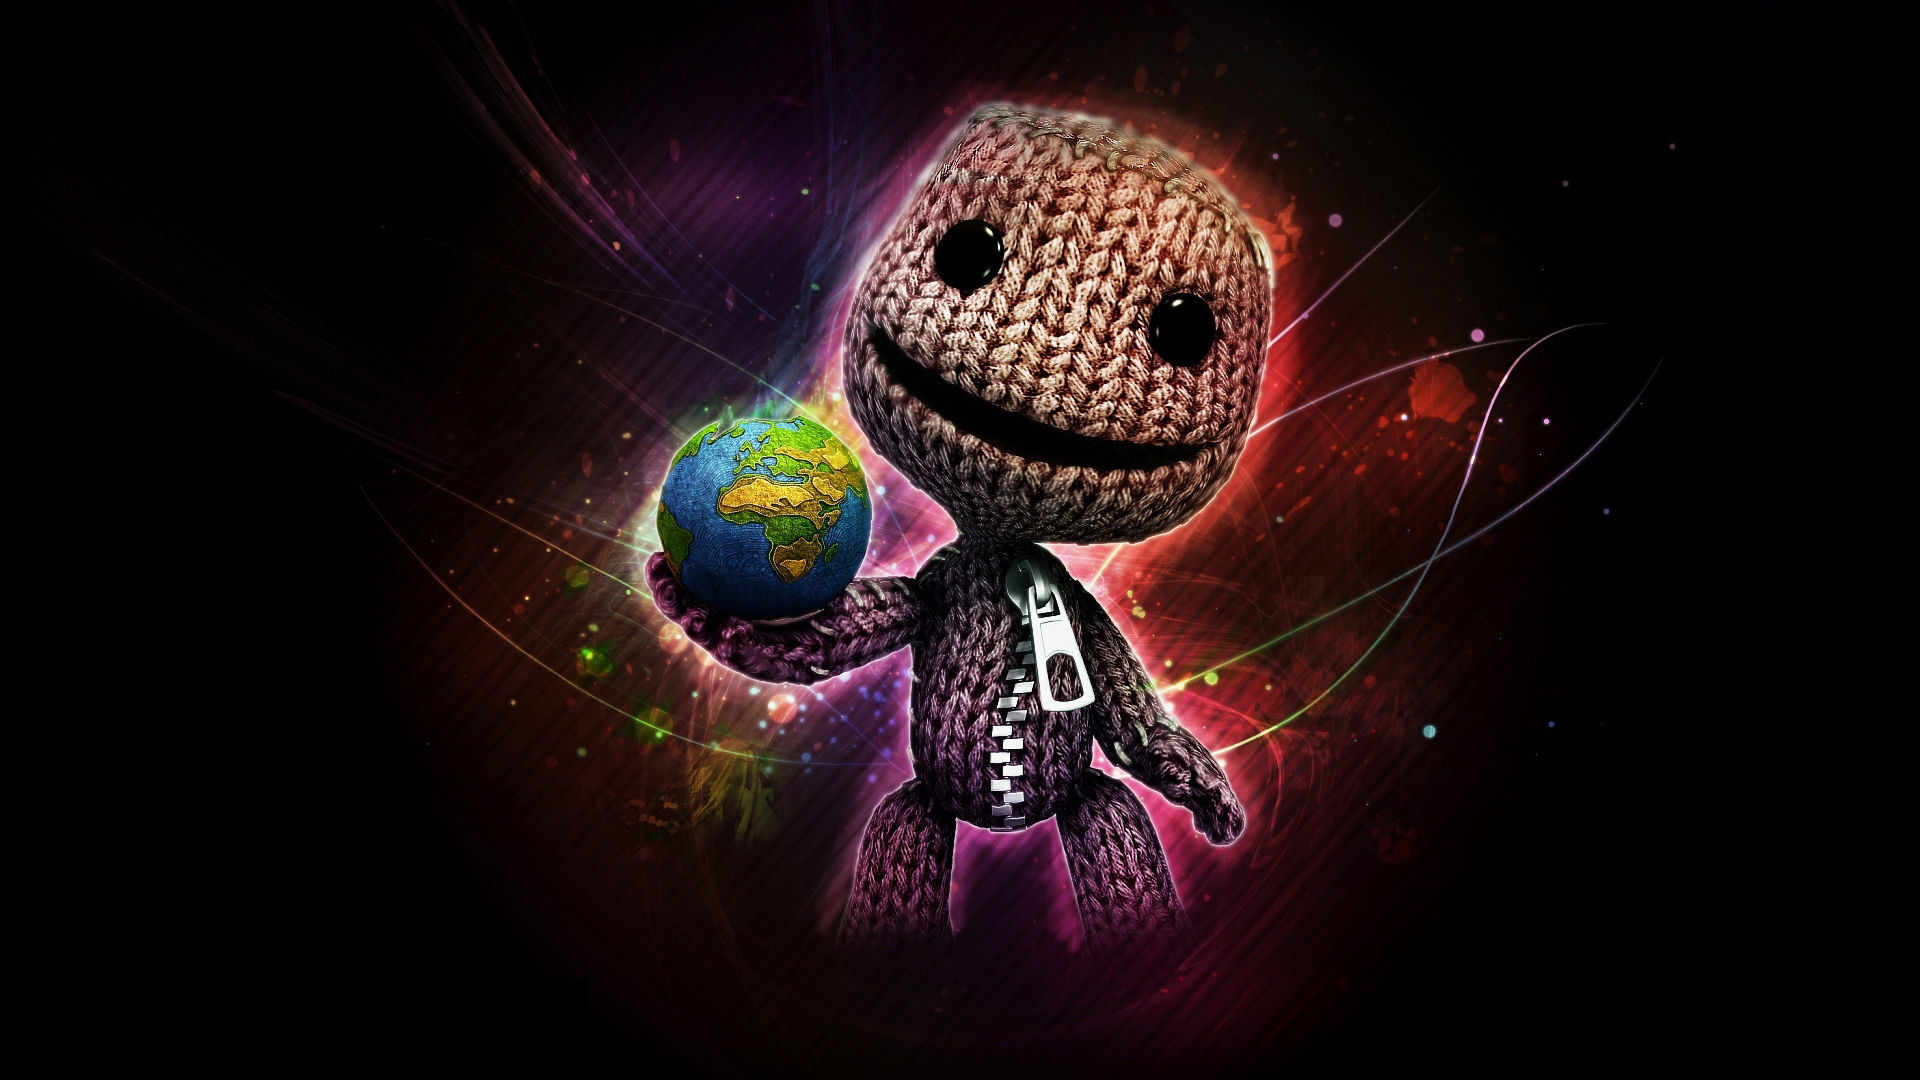 Related Wallpapers from Texas Rangers Wallpaper. HD Wallpaper | Background  ID:90931. Video Game LittleBigPlanet